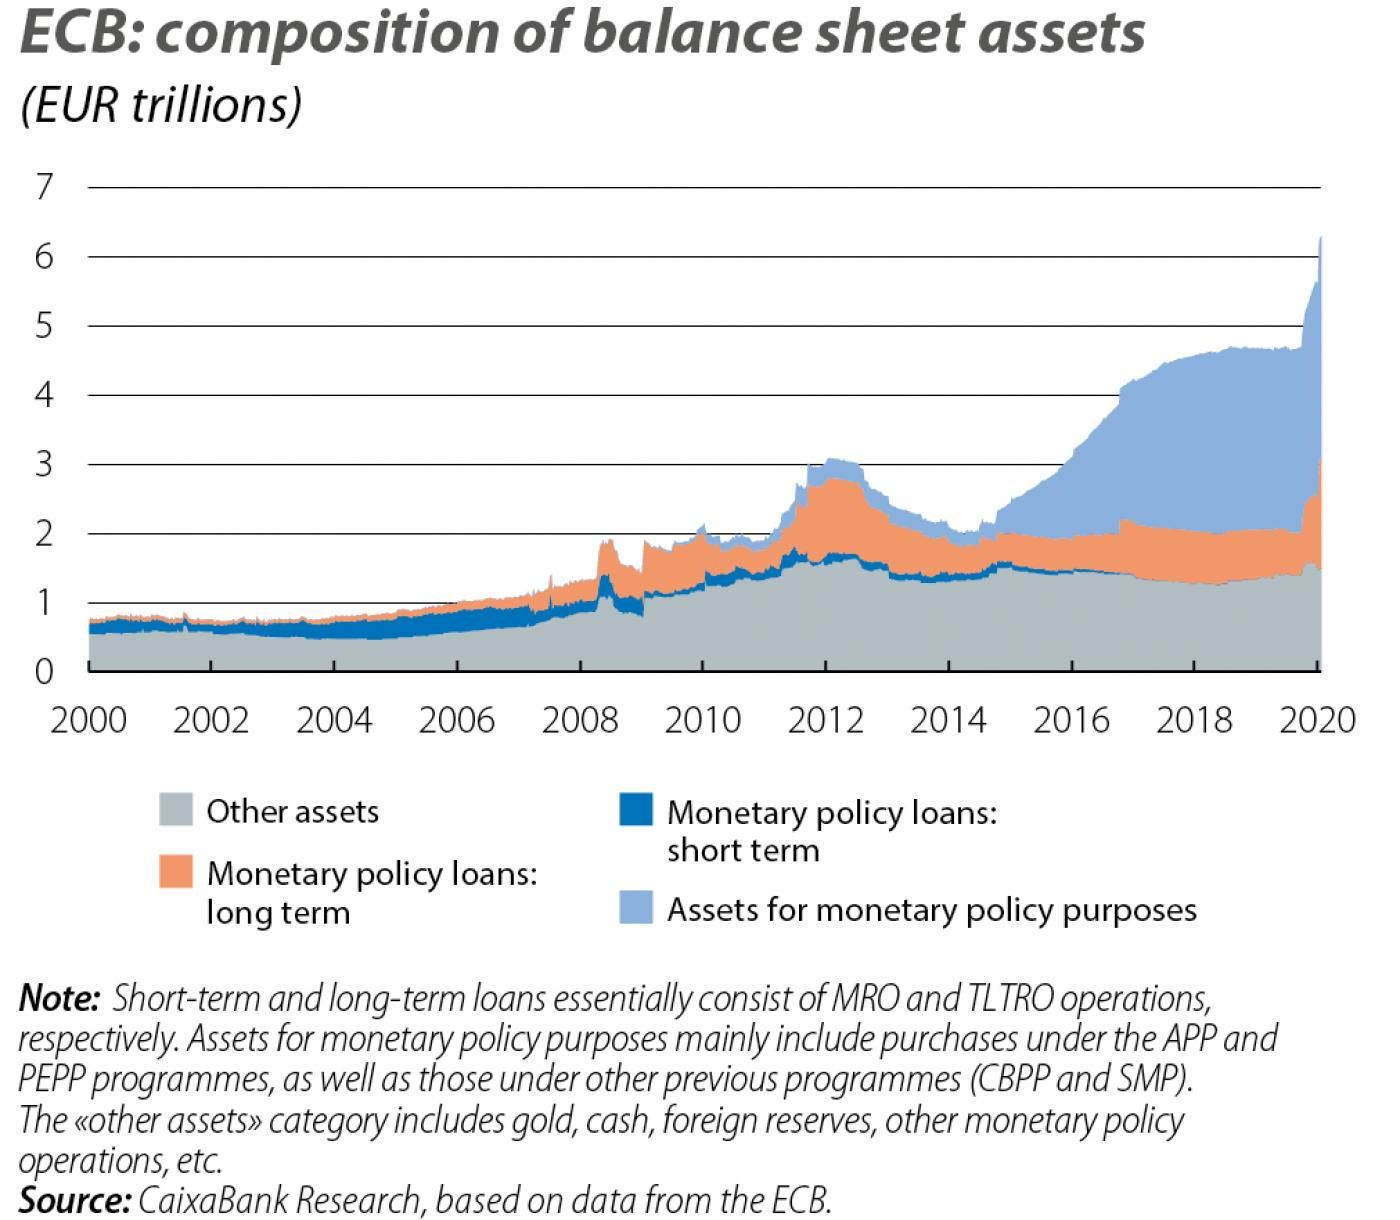 ECB: composition of balance sheet assets